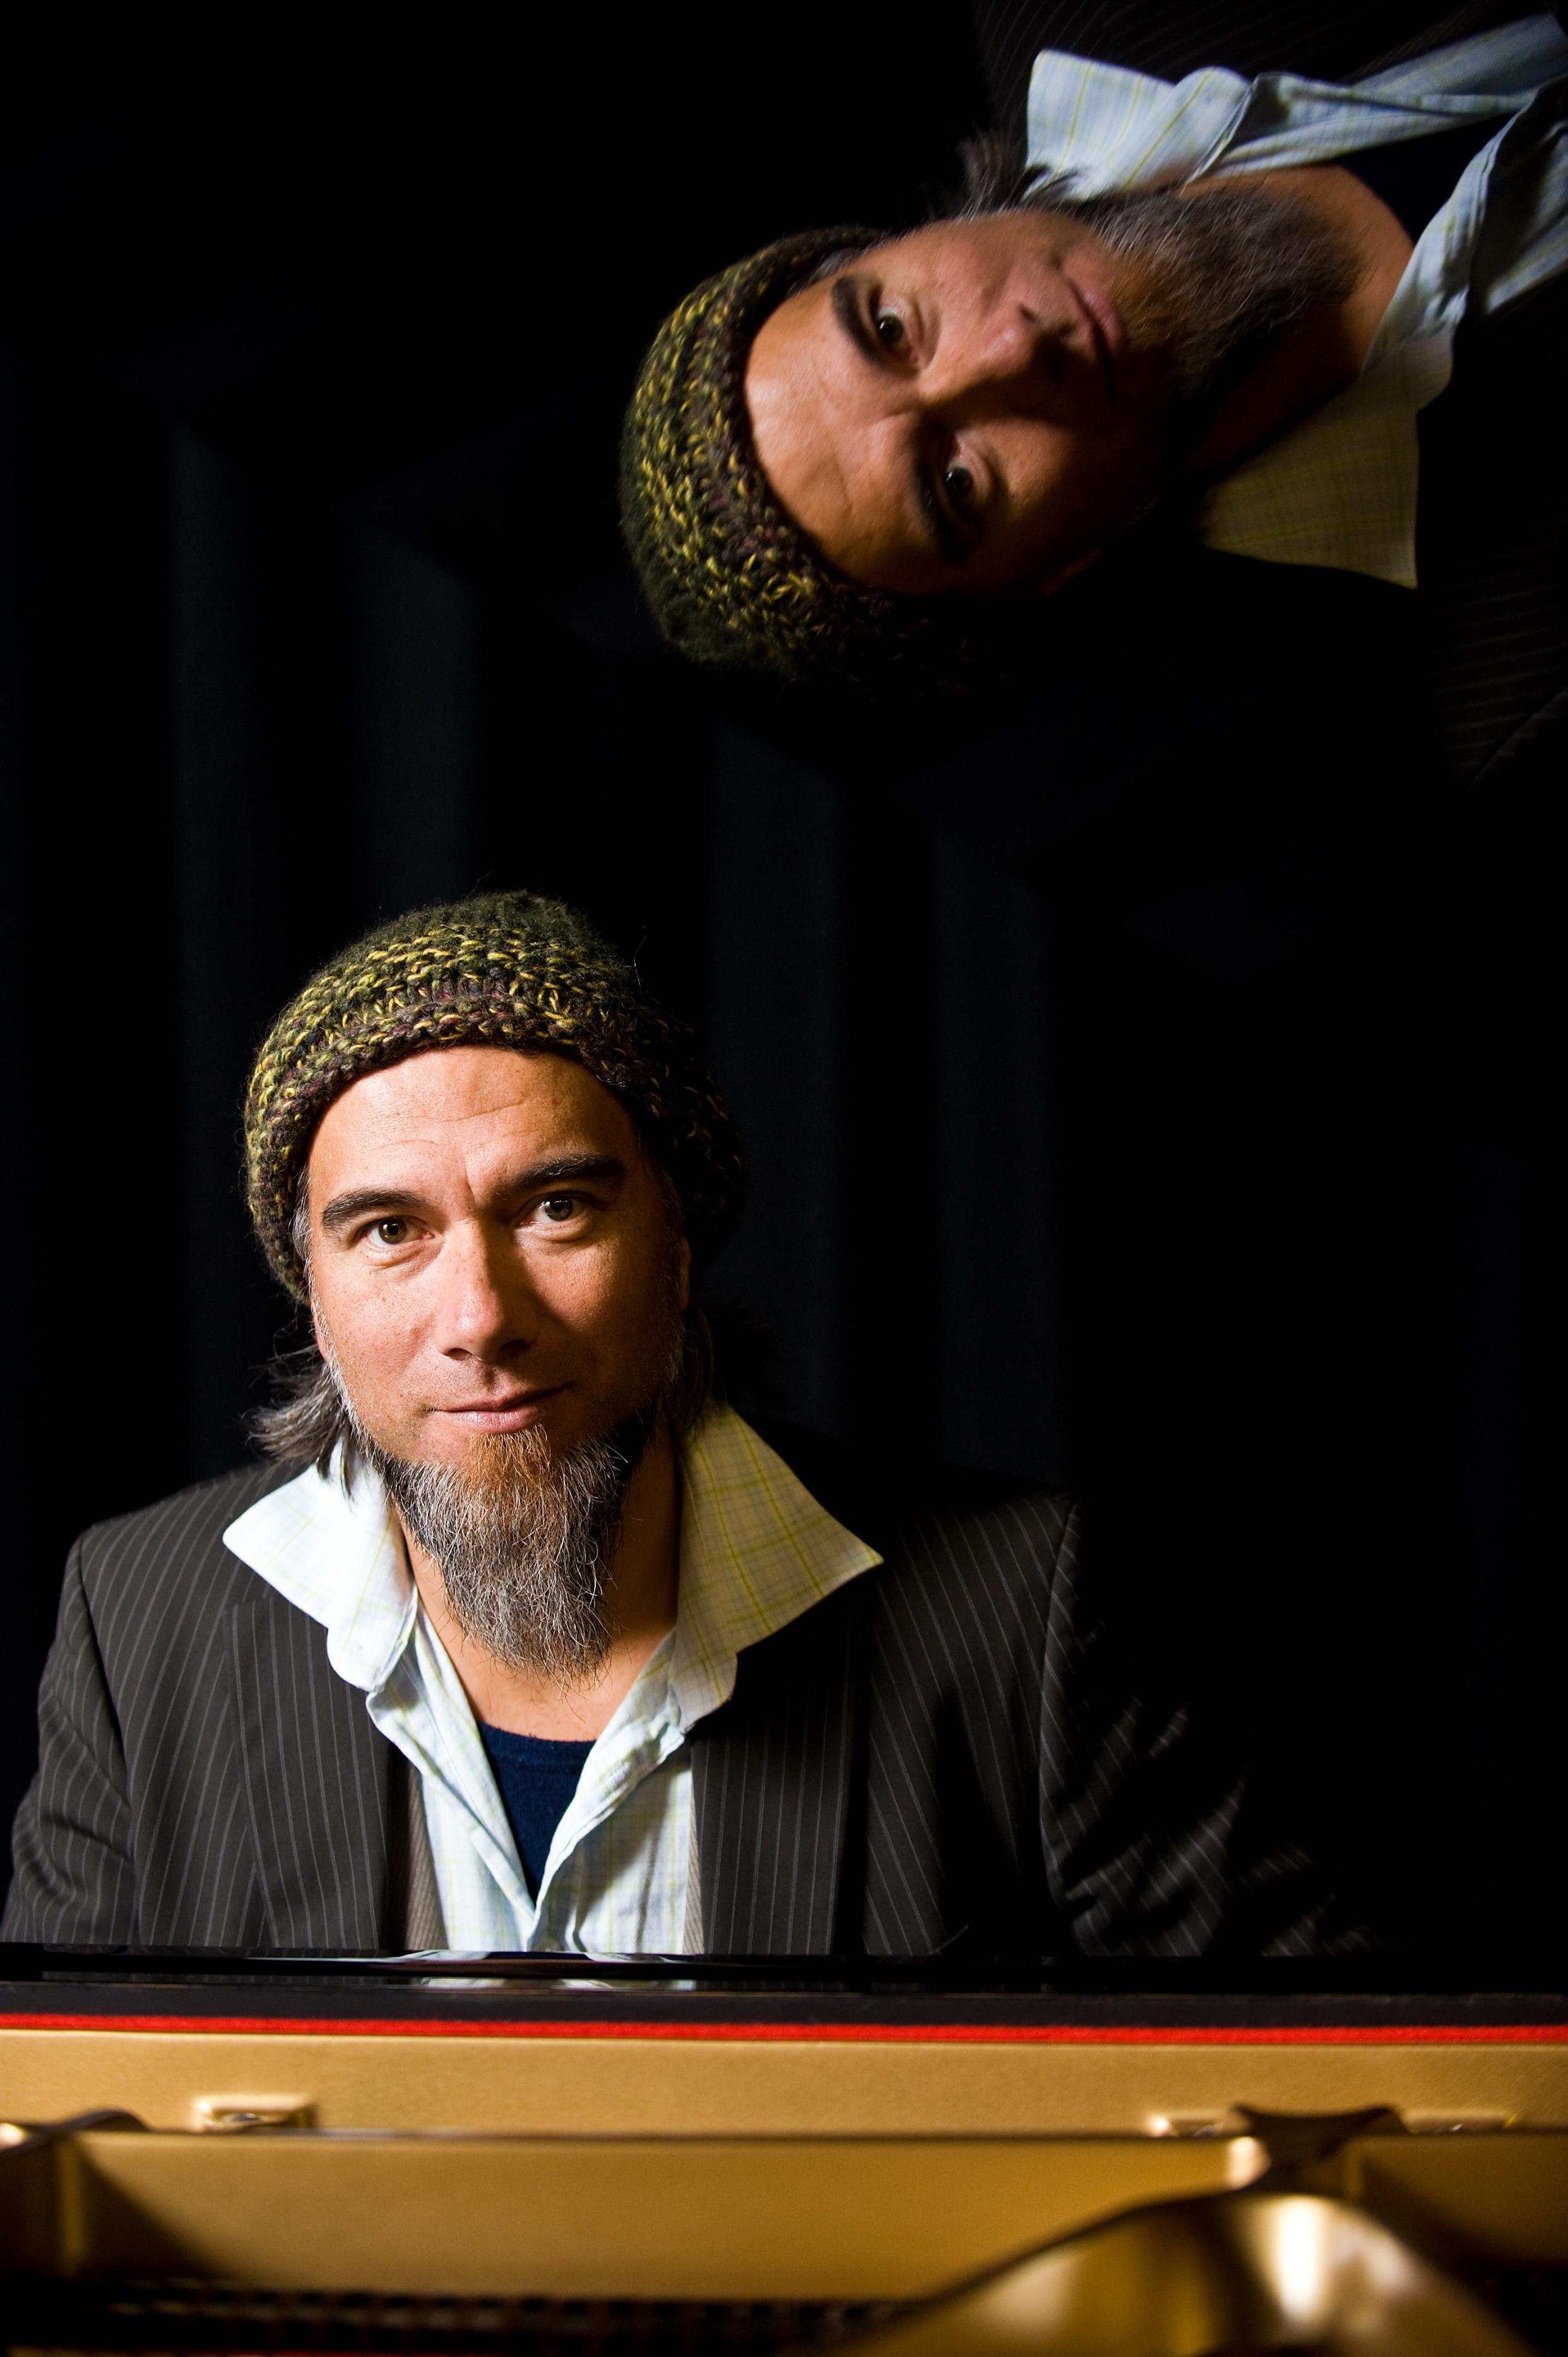 11th May 2009. Warren Maxwell fron The Black Seeds and Little Bushman fame at Massey University Wellington campus.